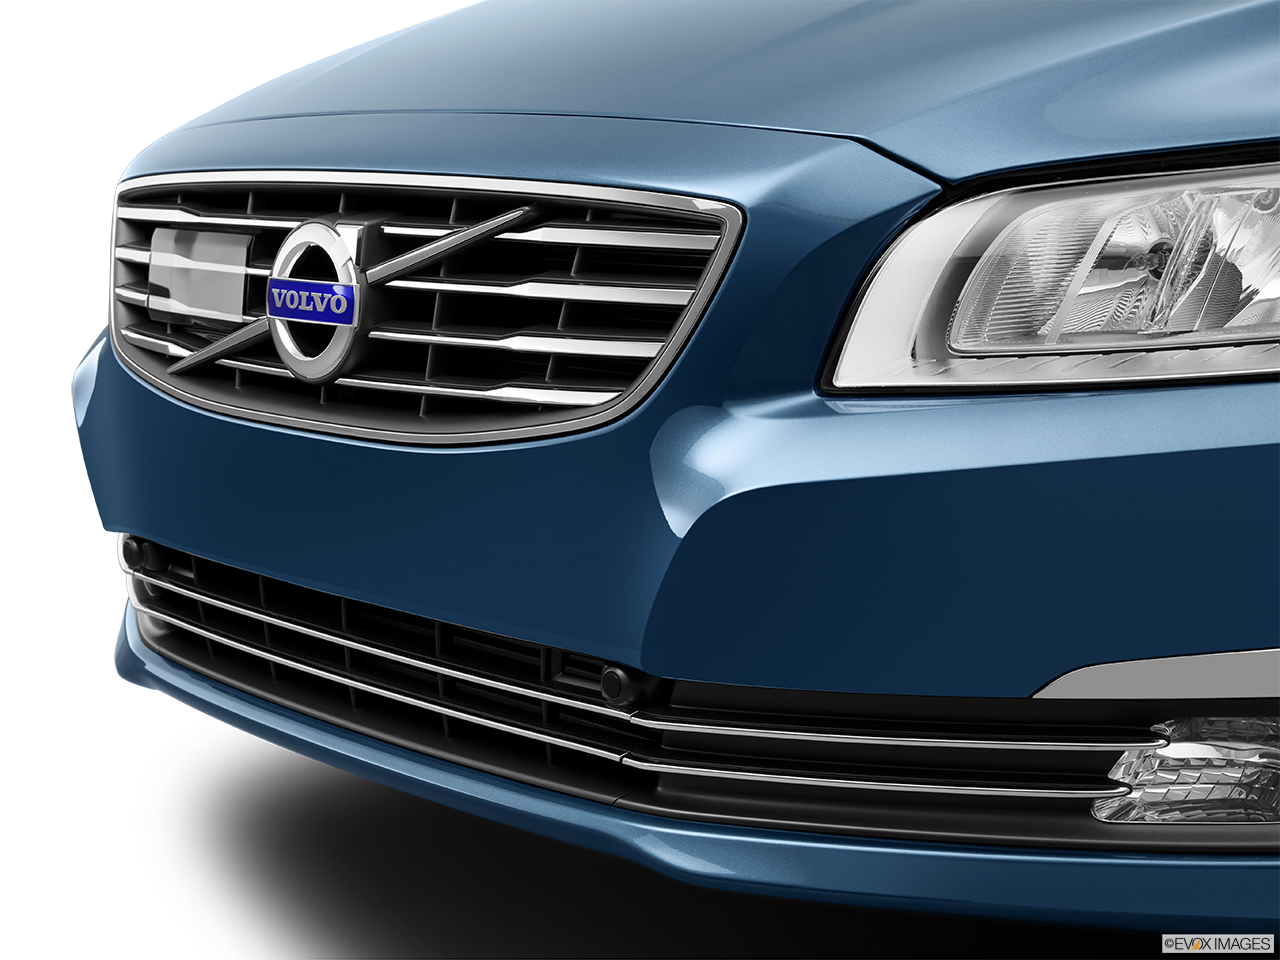 2014 Volvo S80 T6 AWD Platinum Close up of Grill.